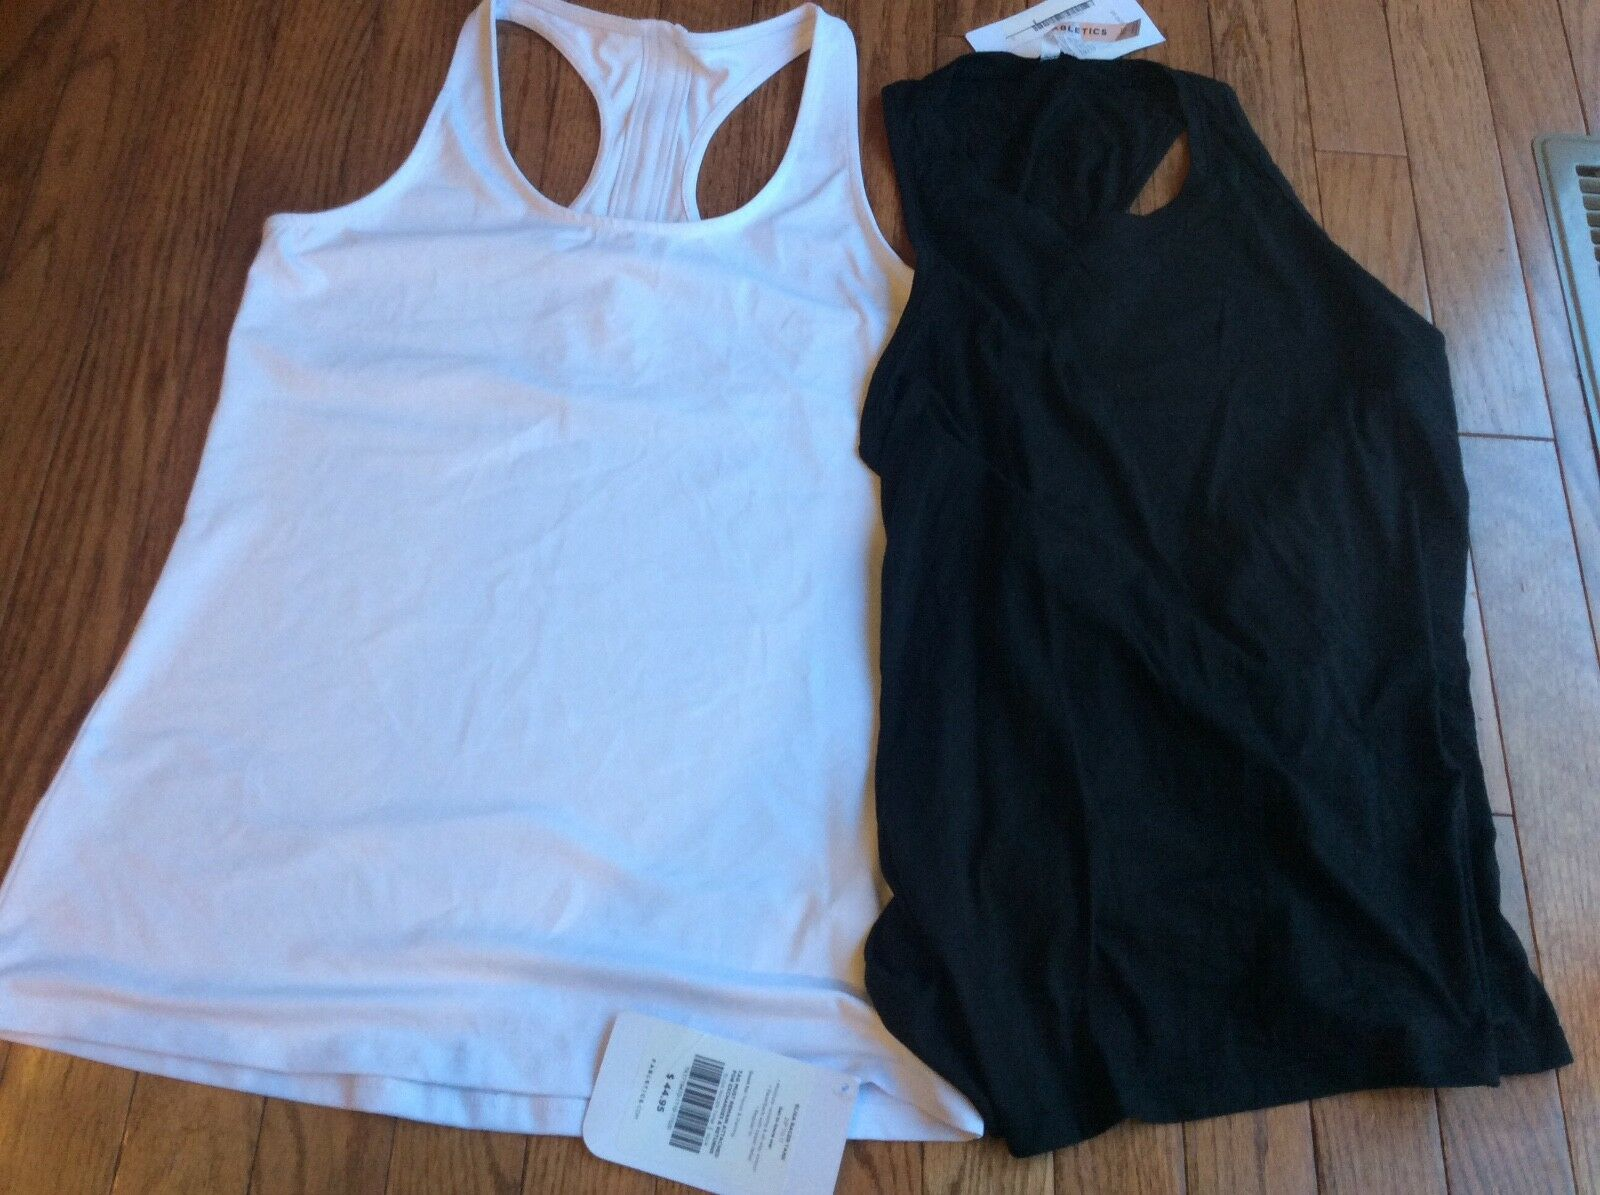 NWT  Fabletics Tanks  Elisa and Kerry   XS